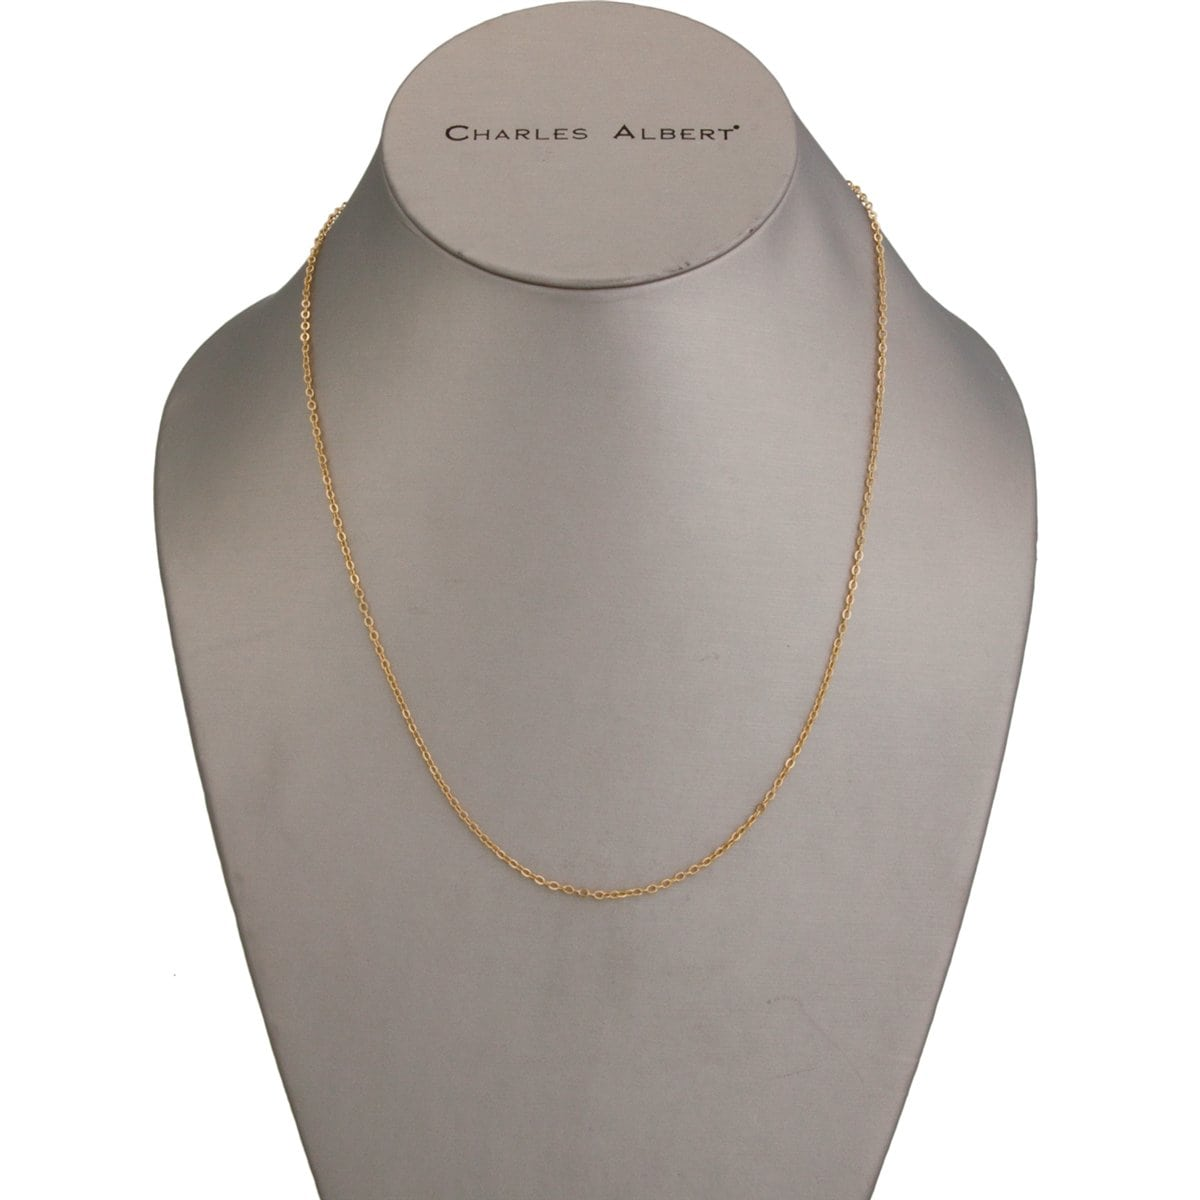 "Thin Gold Tone Base Metal Chain - 17"" + 3"" Extender 